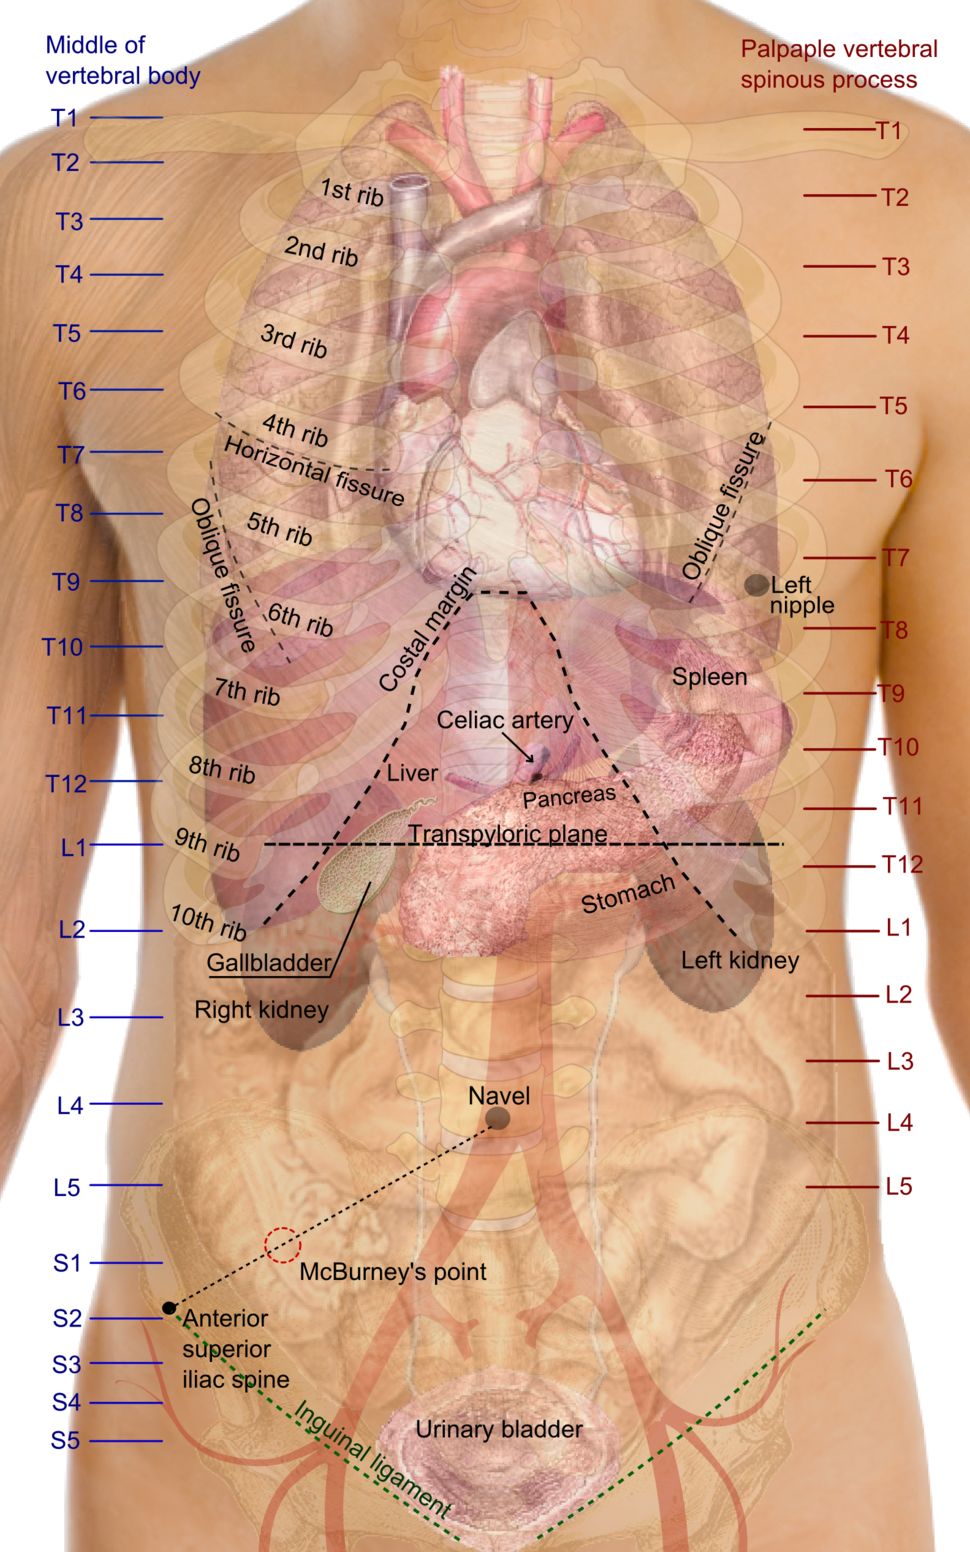 Surface projections of the organs of the trunk